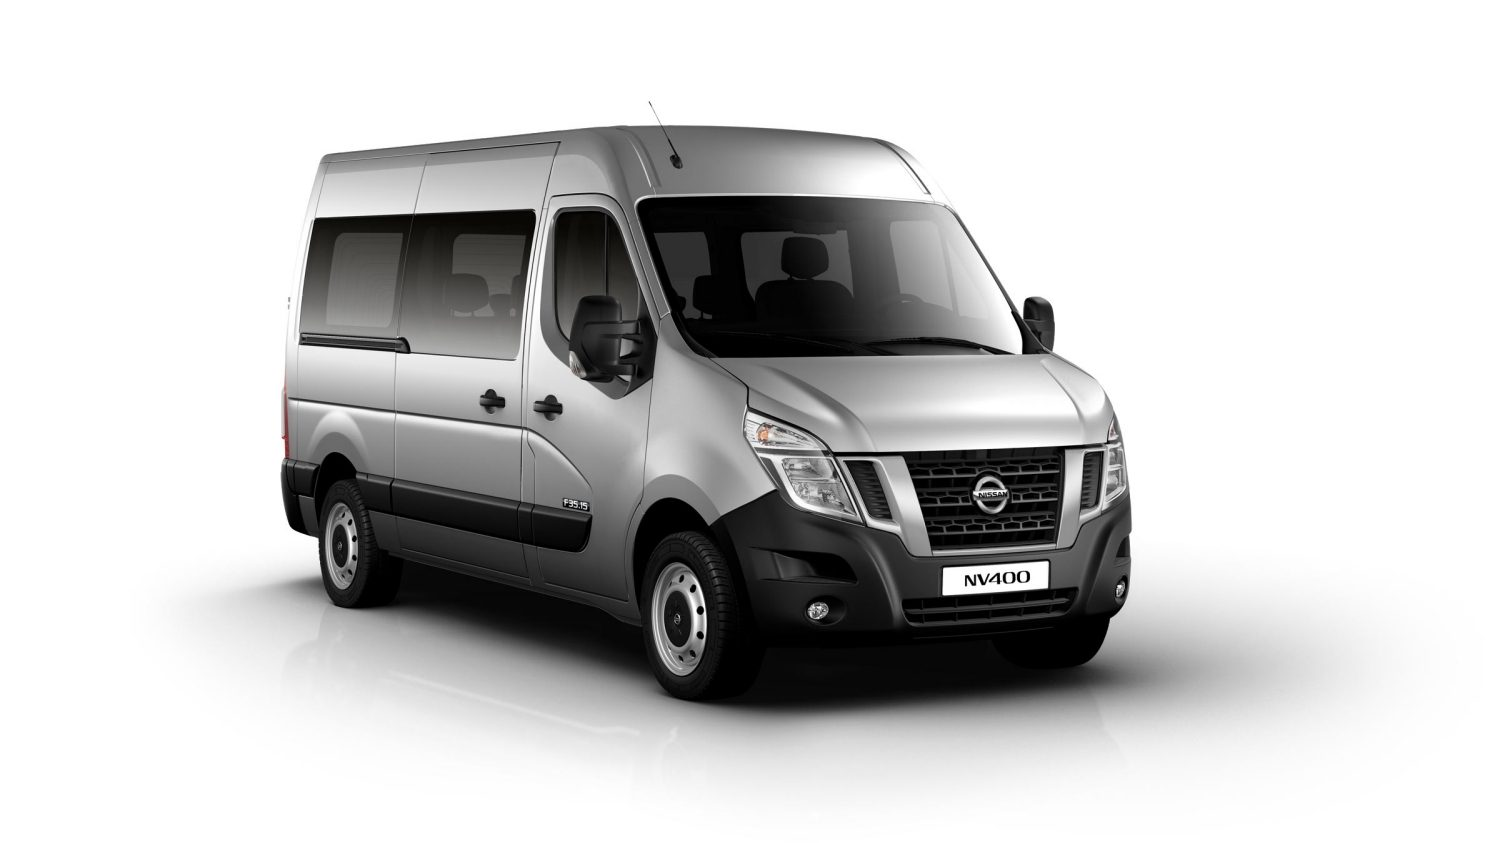 version combi nissan nv400 fourgon utilitaire nissan. Black Bedroom Furniture Sets. Home Design Ideas